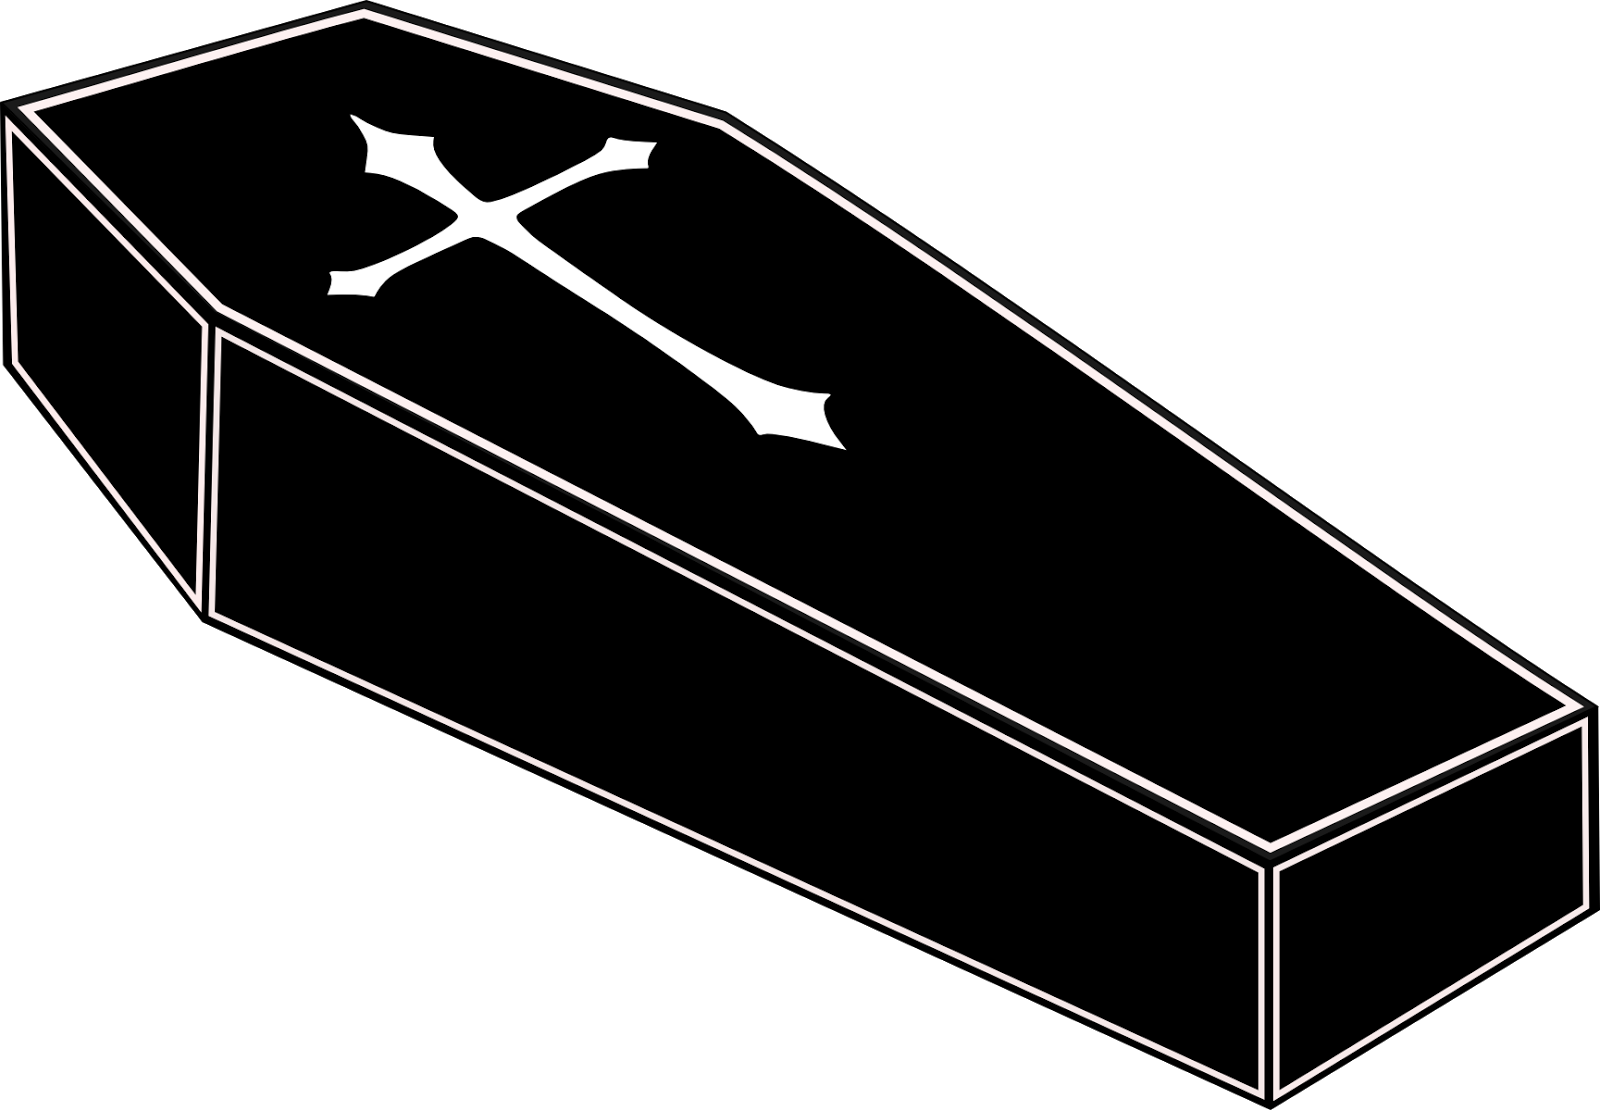 Coffin clipart grave. Terry reis kennedy final